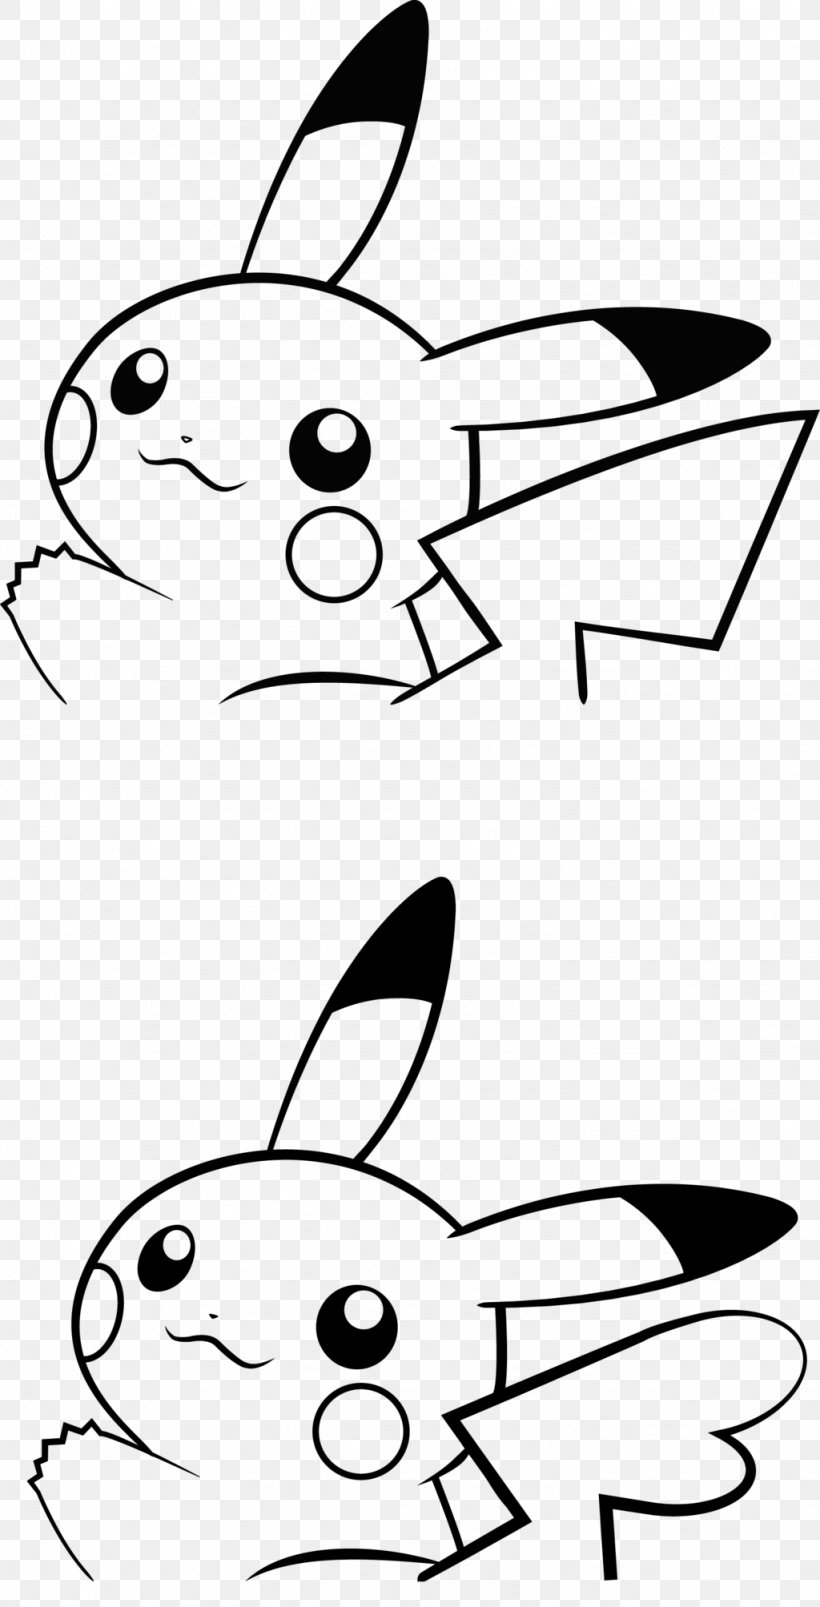 Pikachu Black And White Pokemon Black & White Ash Ketchum.